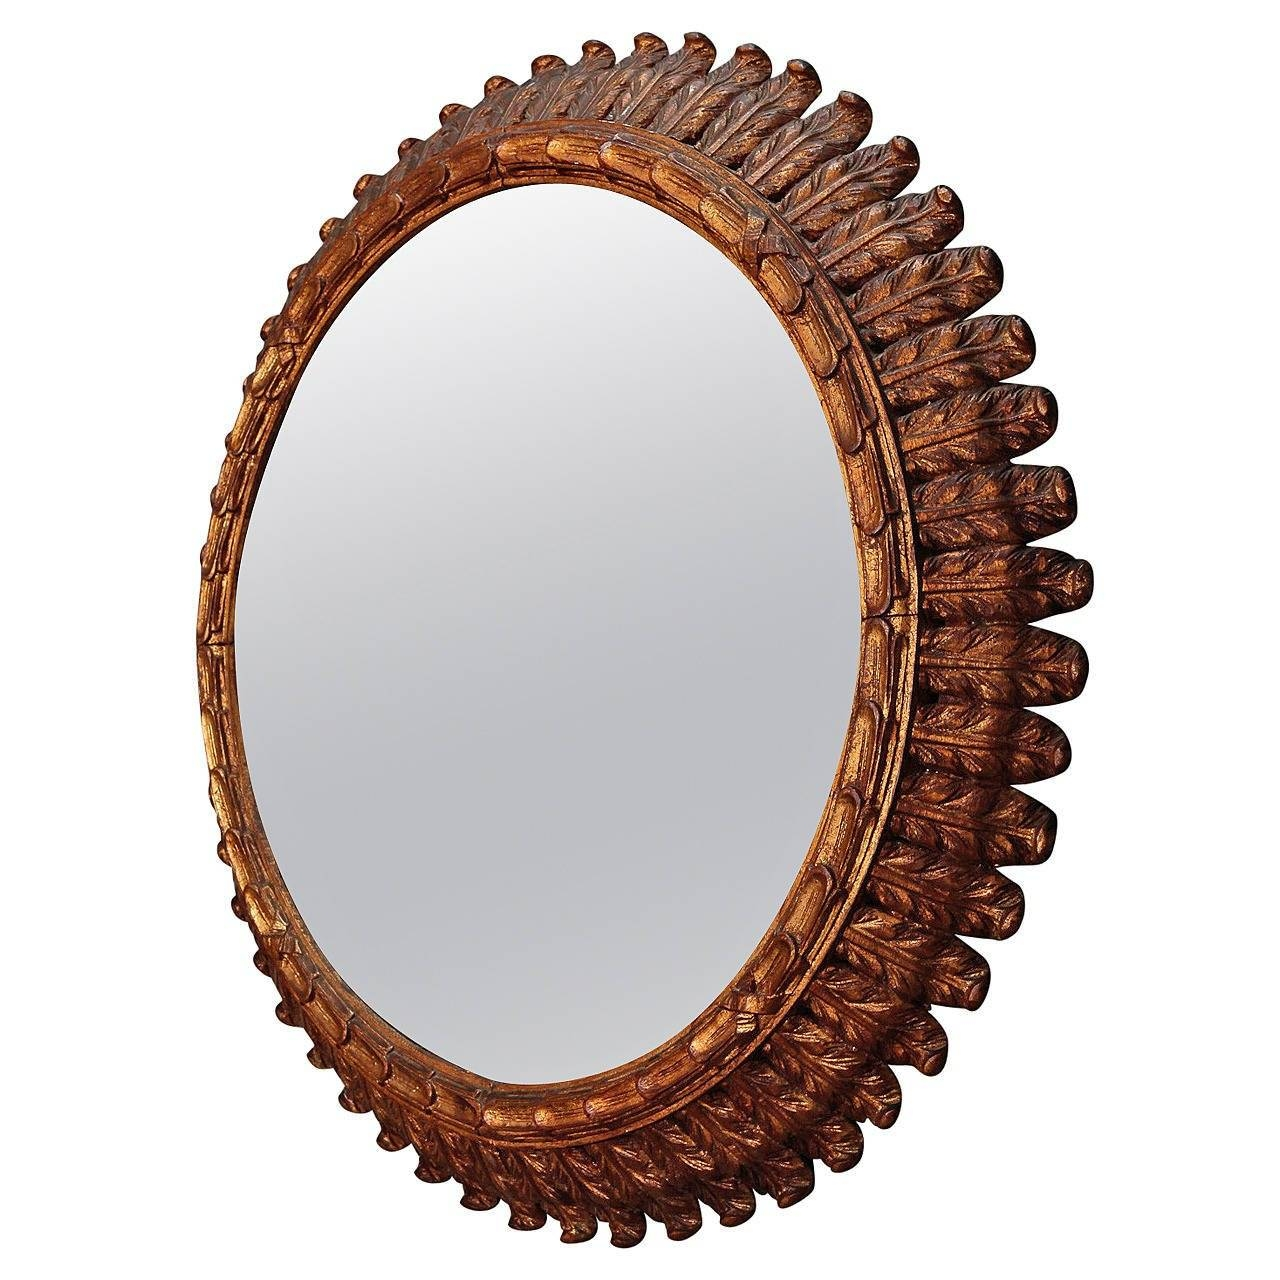 19Th Century French Large Carved Gilt Wood Round Mirror At 1Stdibs Regarding French Oval Mirrors (View 3 of 15)